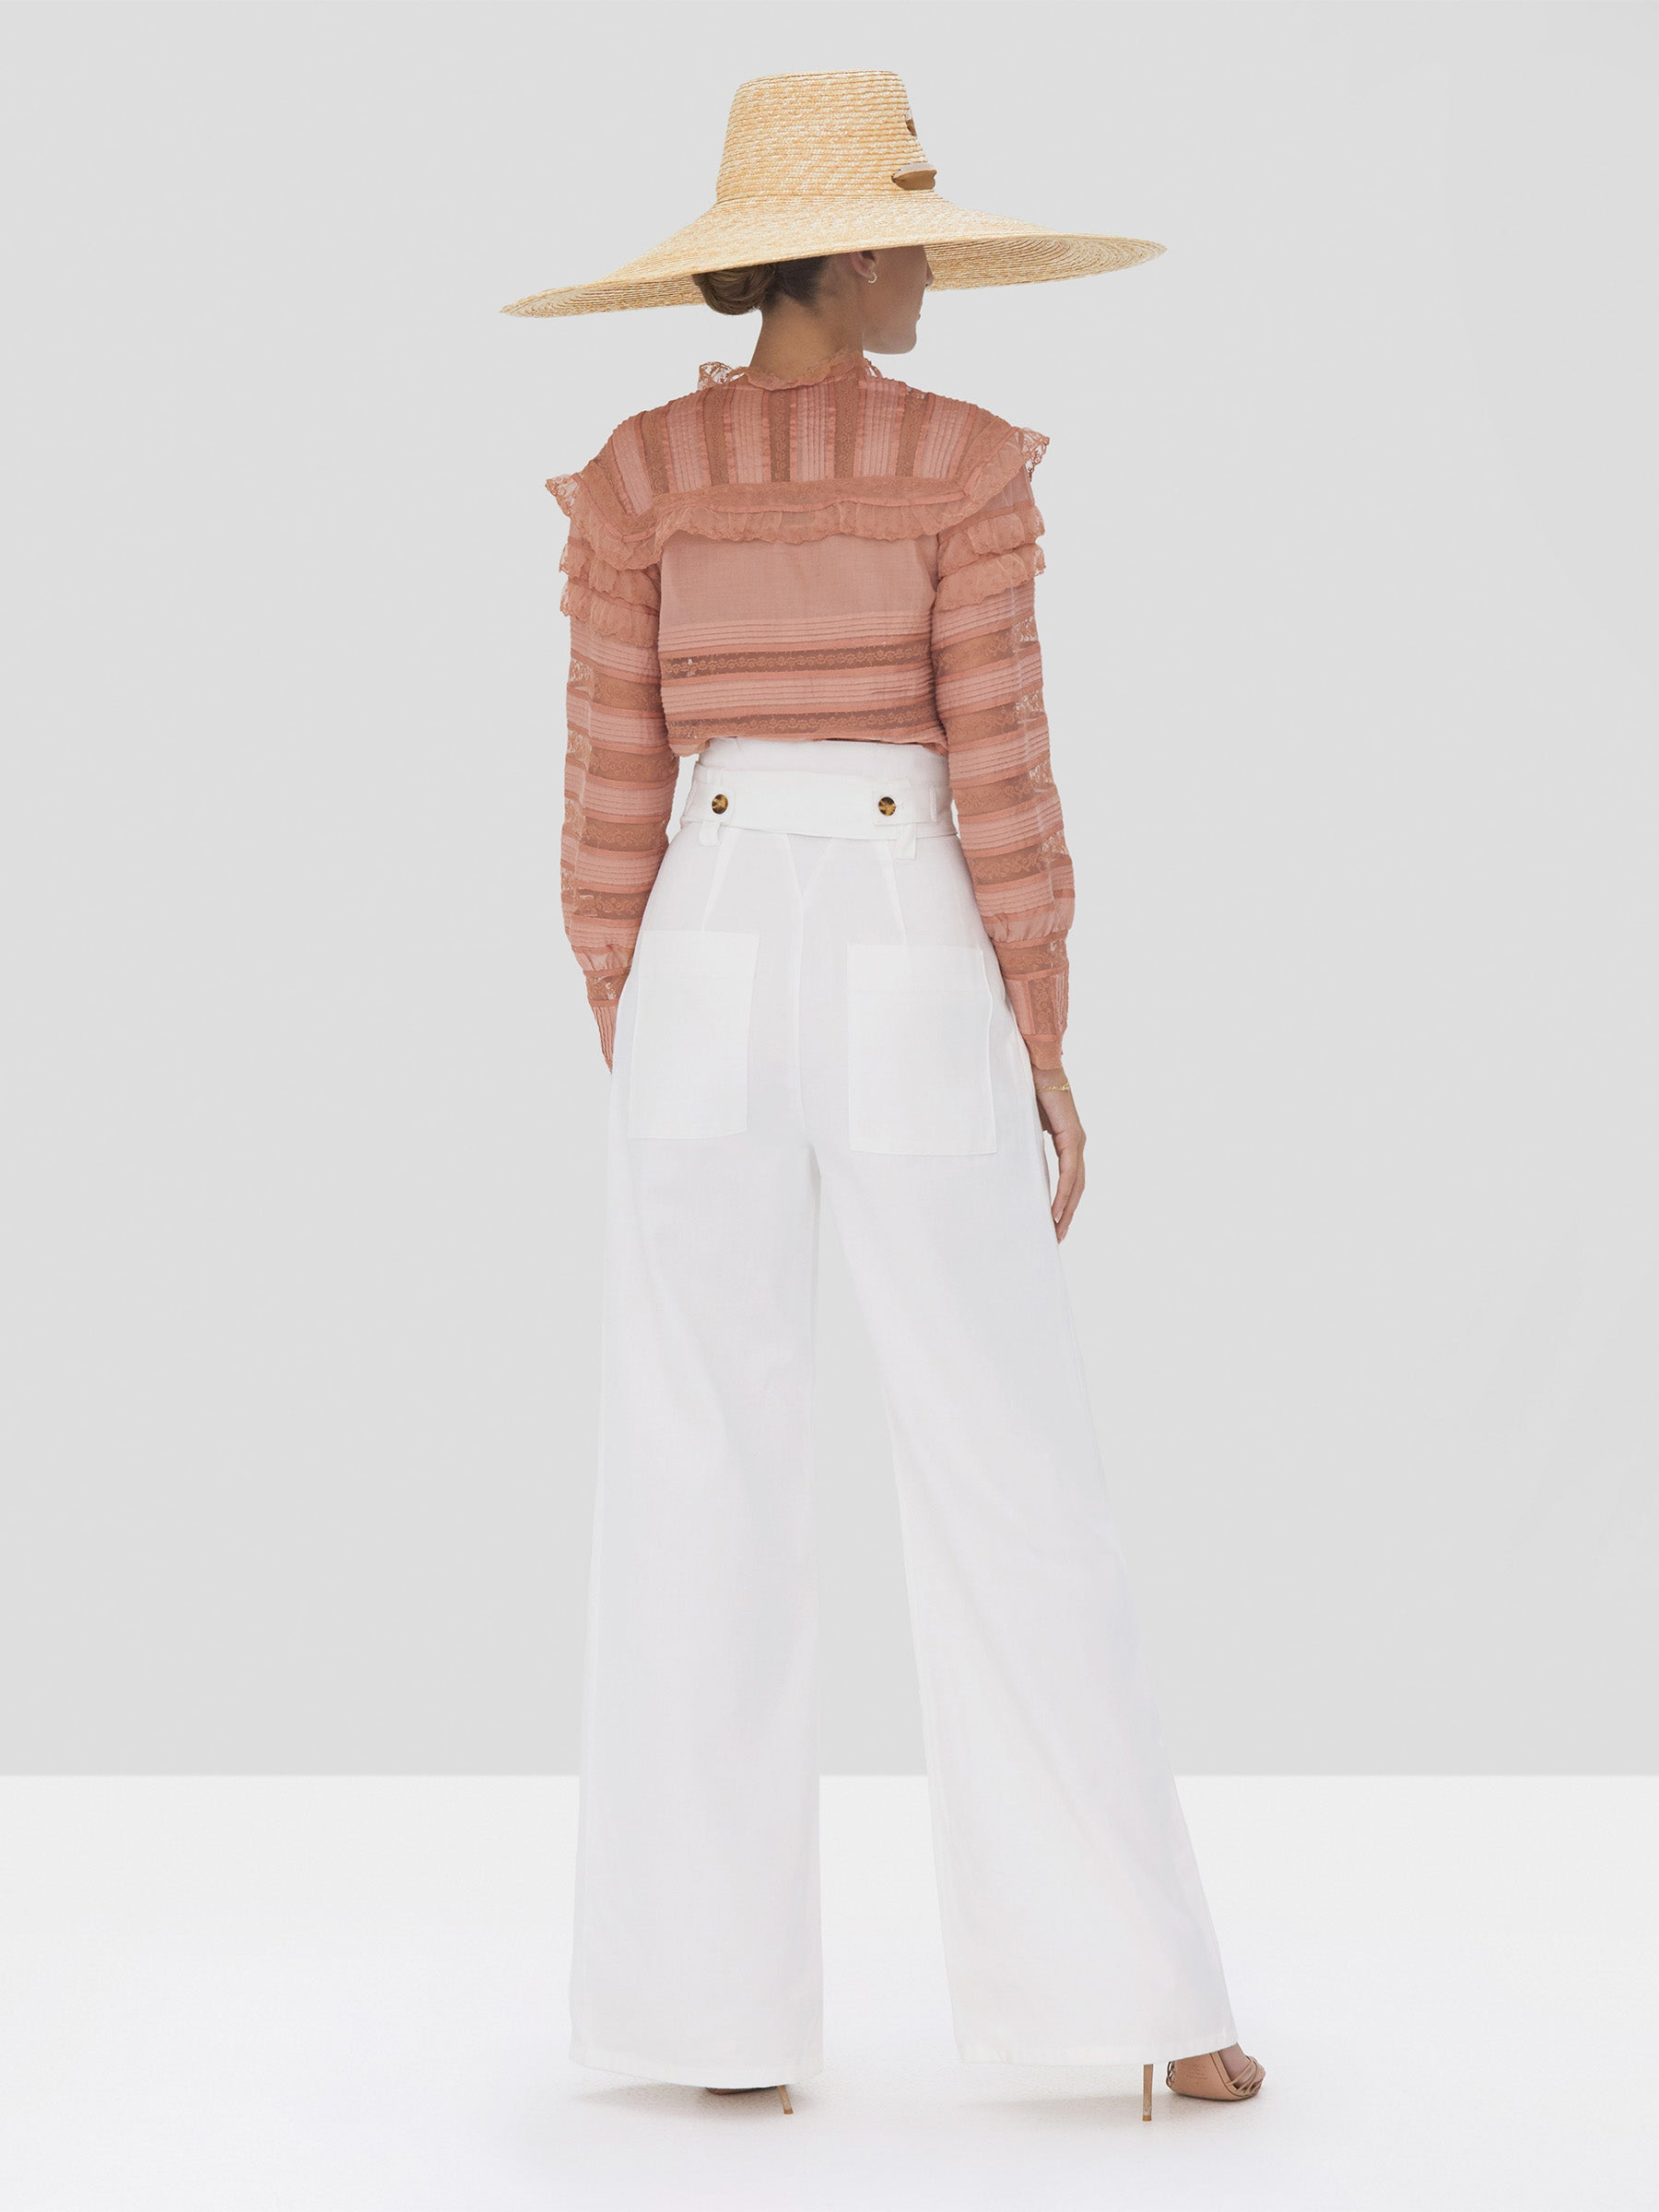 Alexis Karsyn Top in Coral and Kanneth Pant in White from Spring Summer 2020 Collection - Rear View